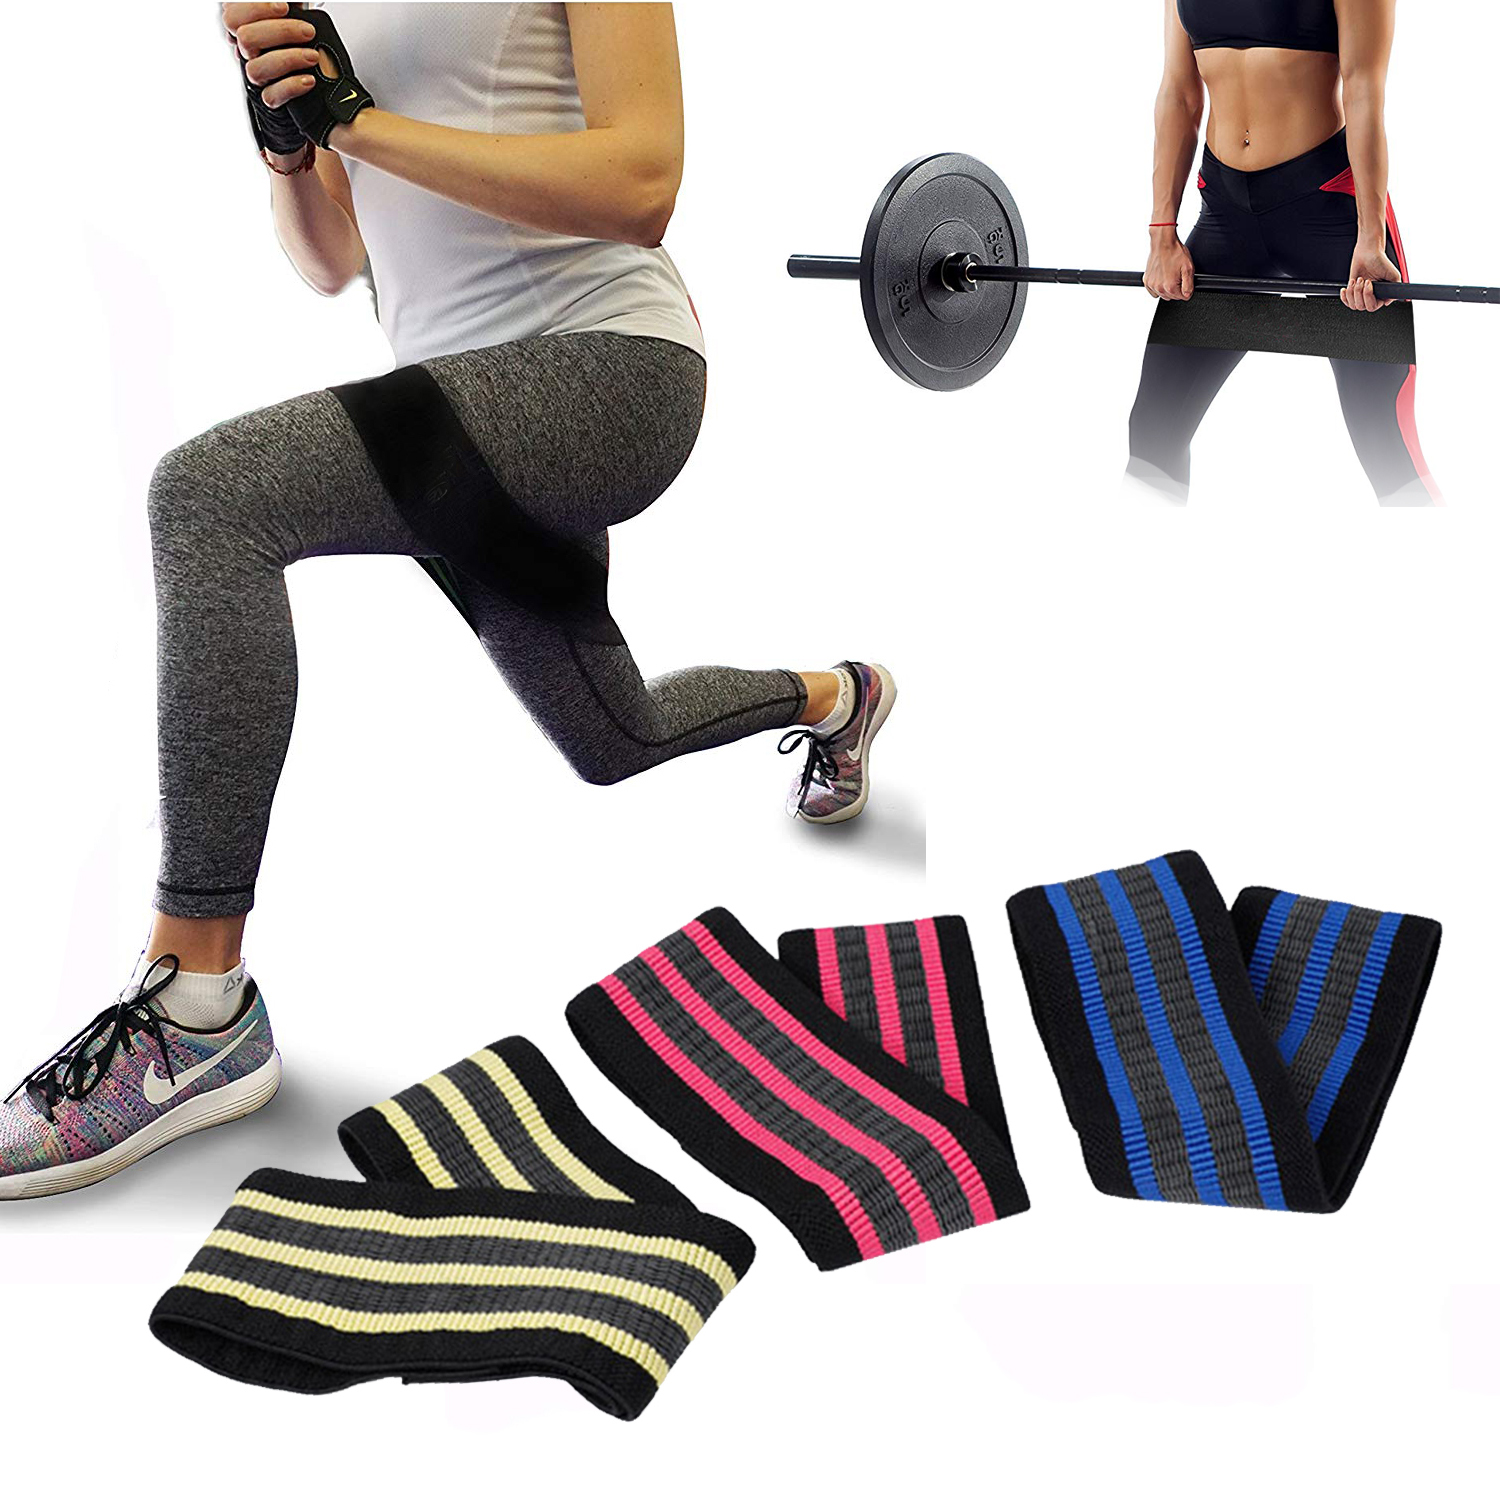 Exercise Bands Hips: Cotton Hip Band Resistance Bands Set Booty Exercise